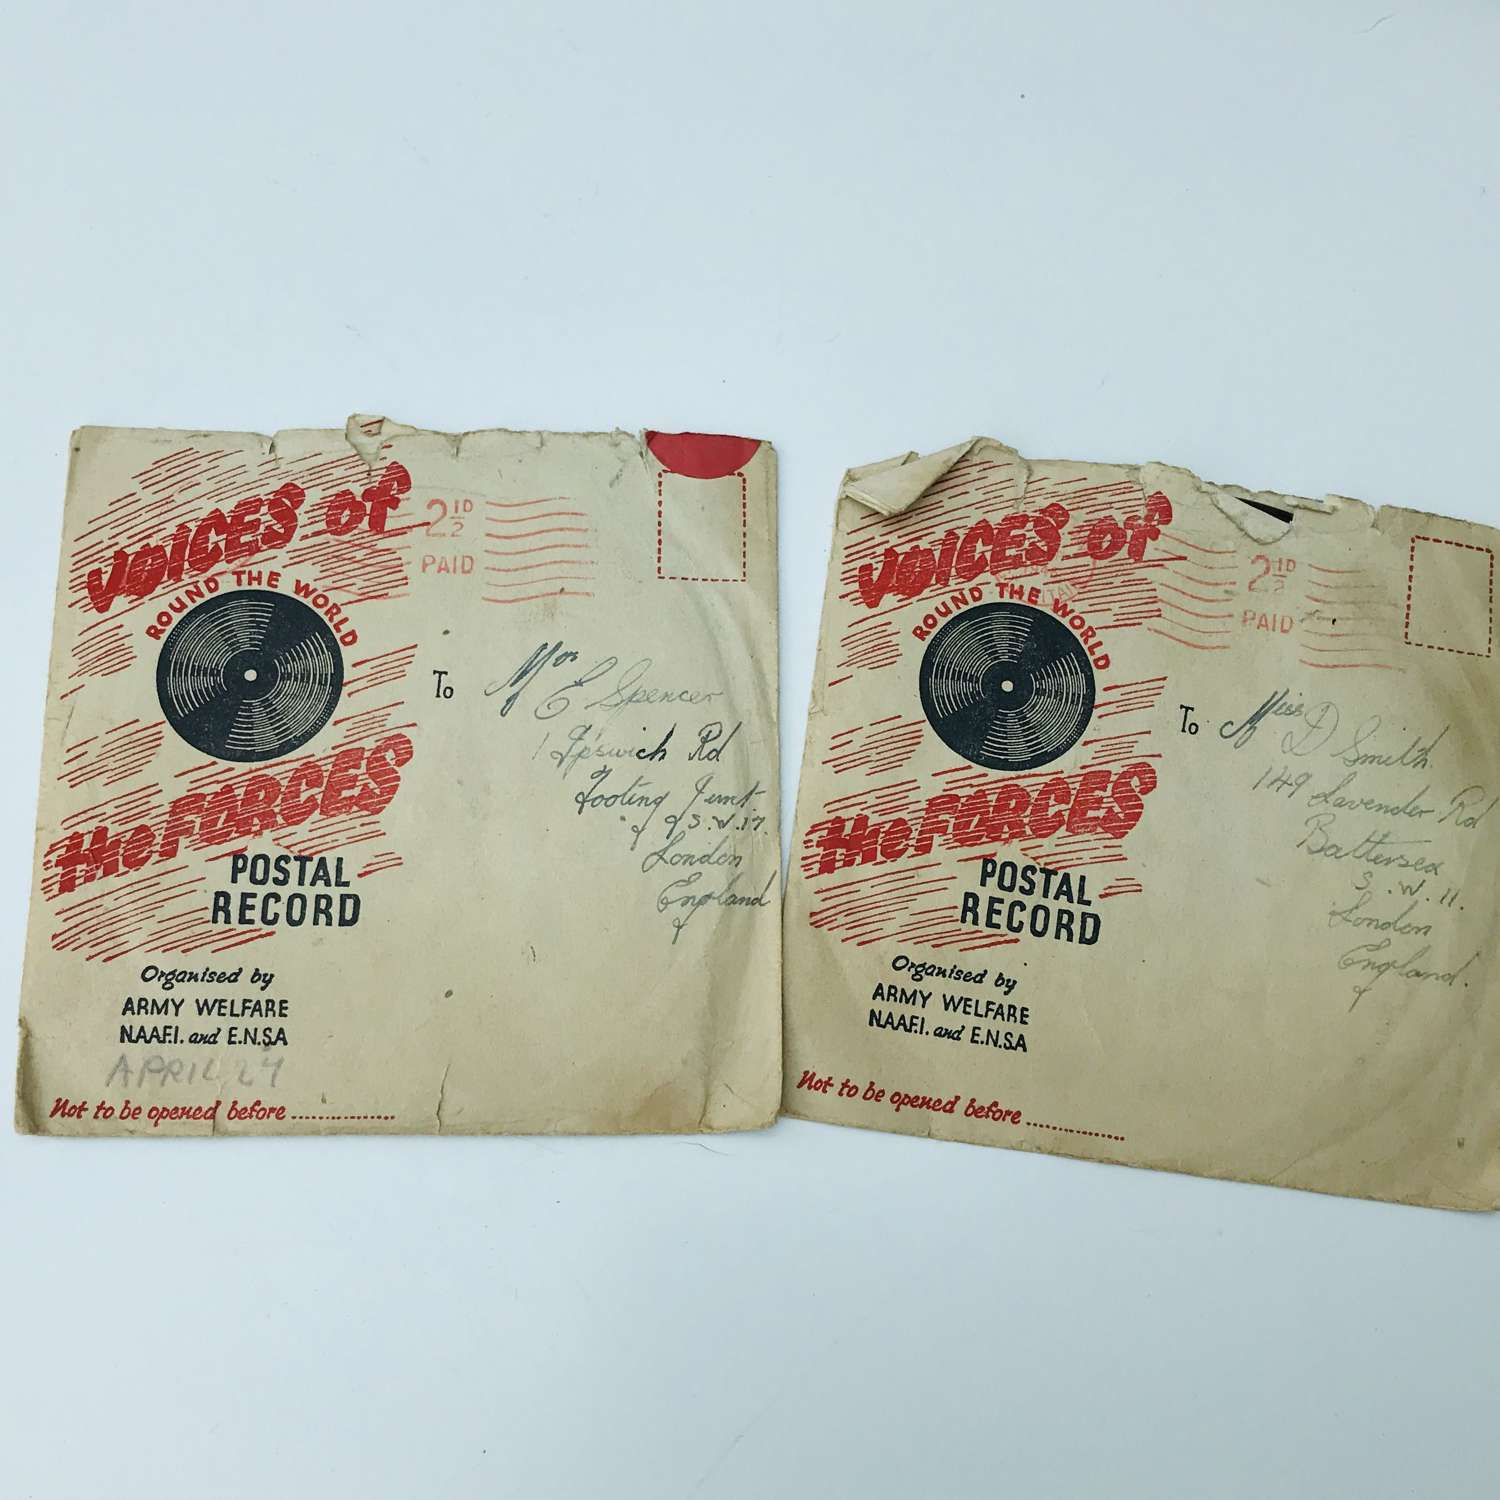 Voices of the forces records in original envelopes.